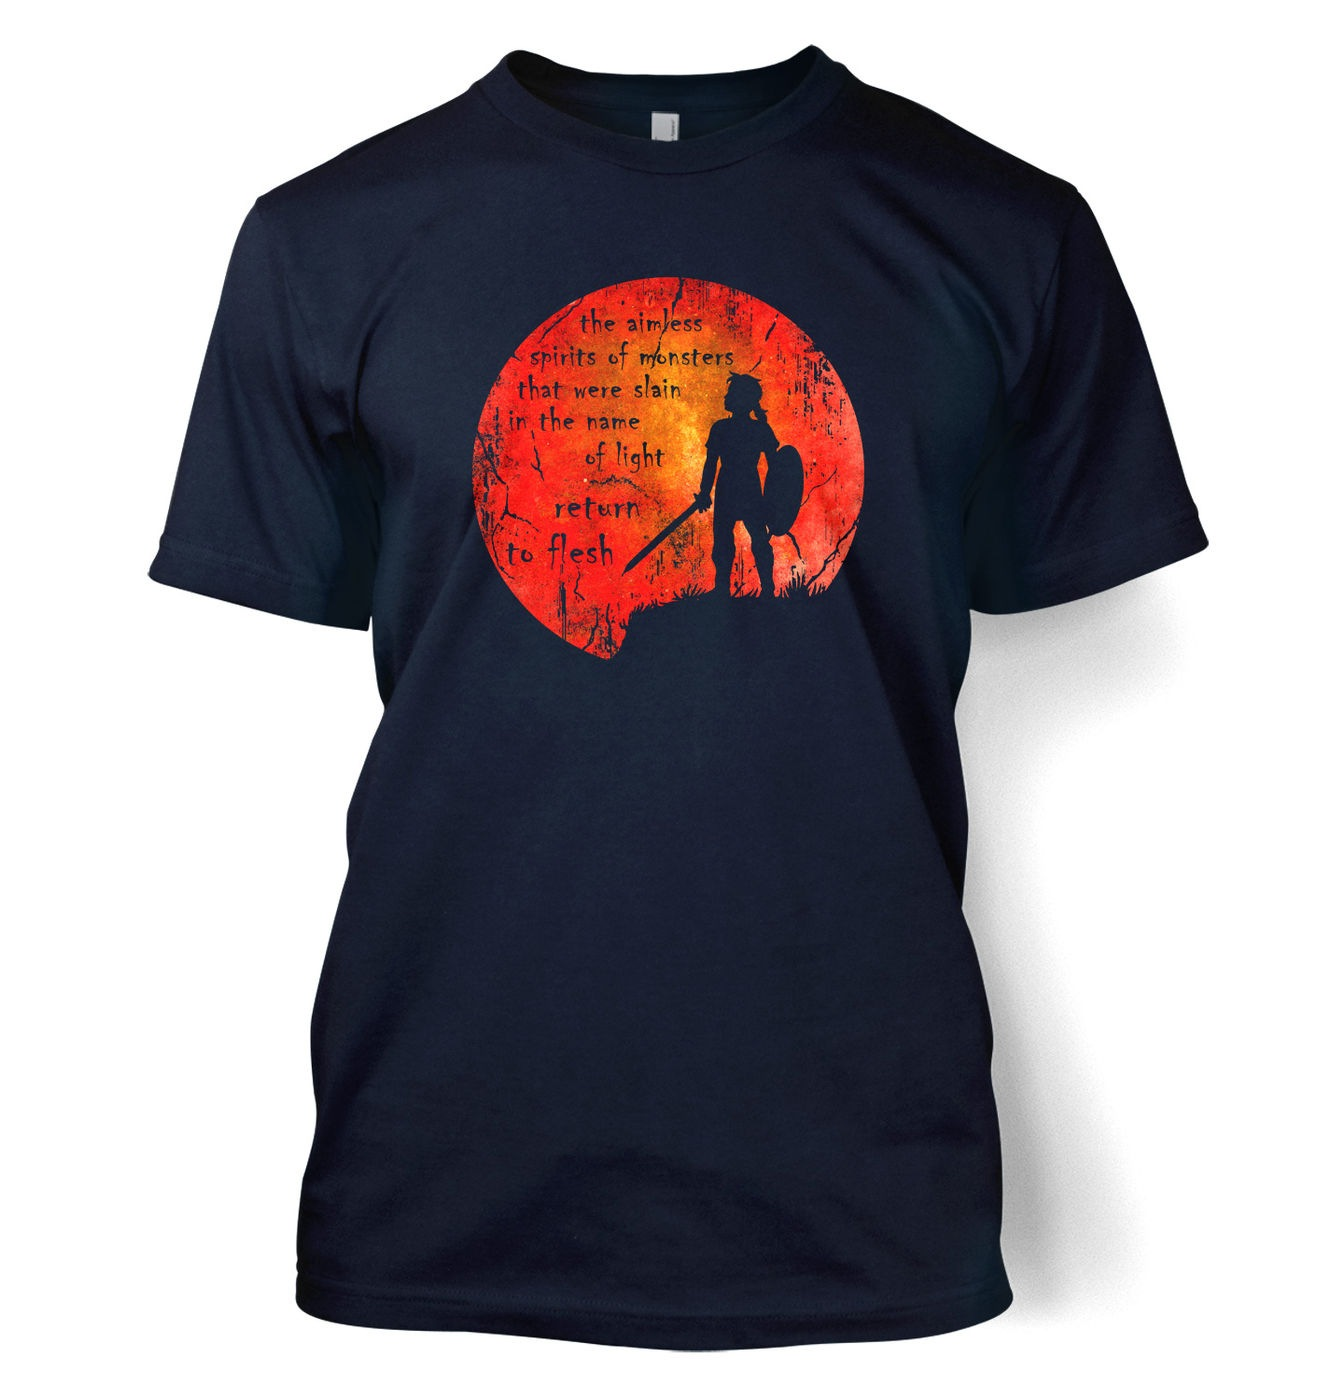 Blood Moon t-shirt by Something Geeky